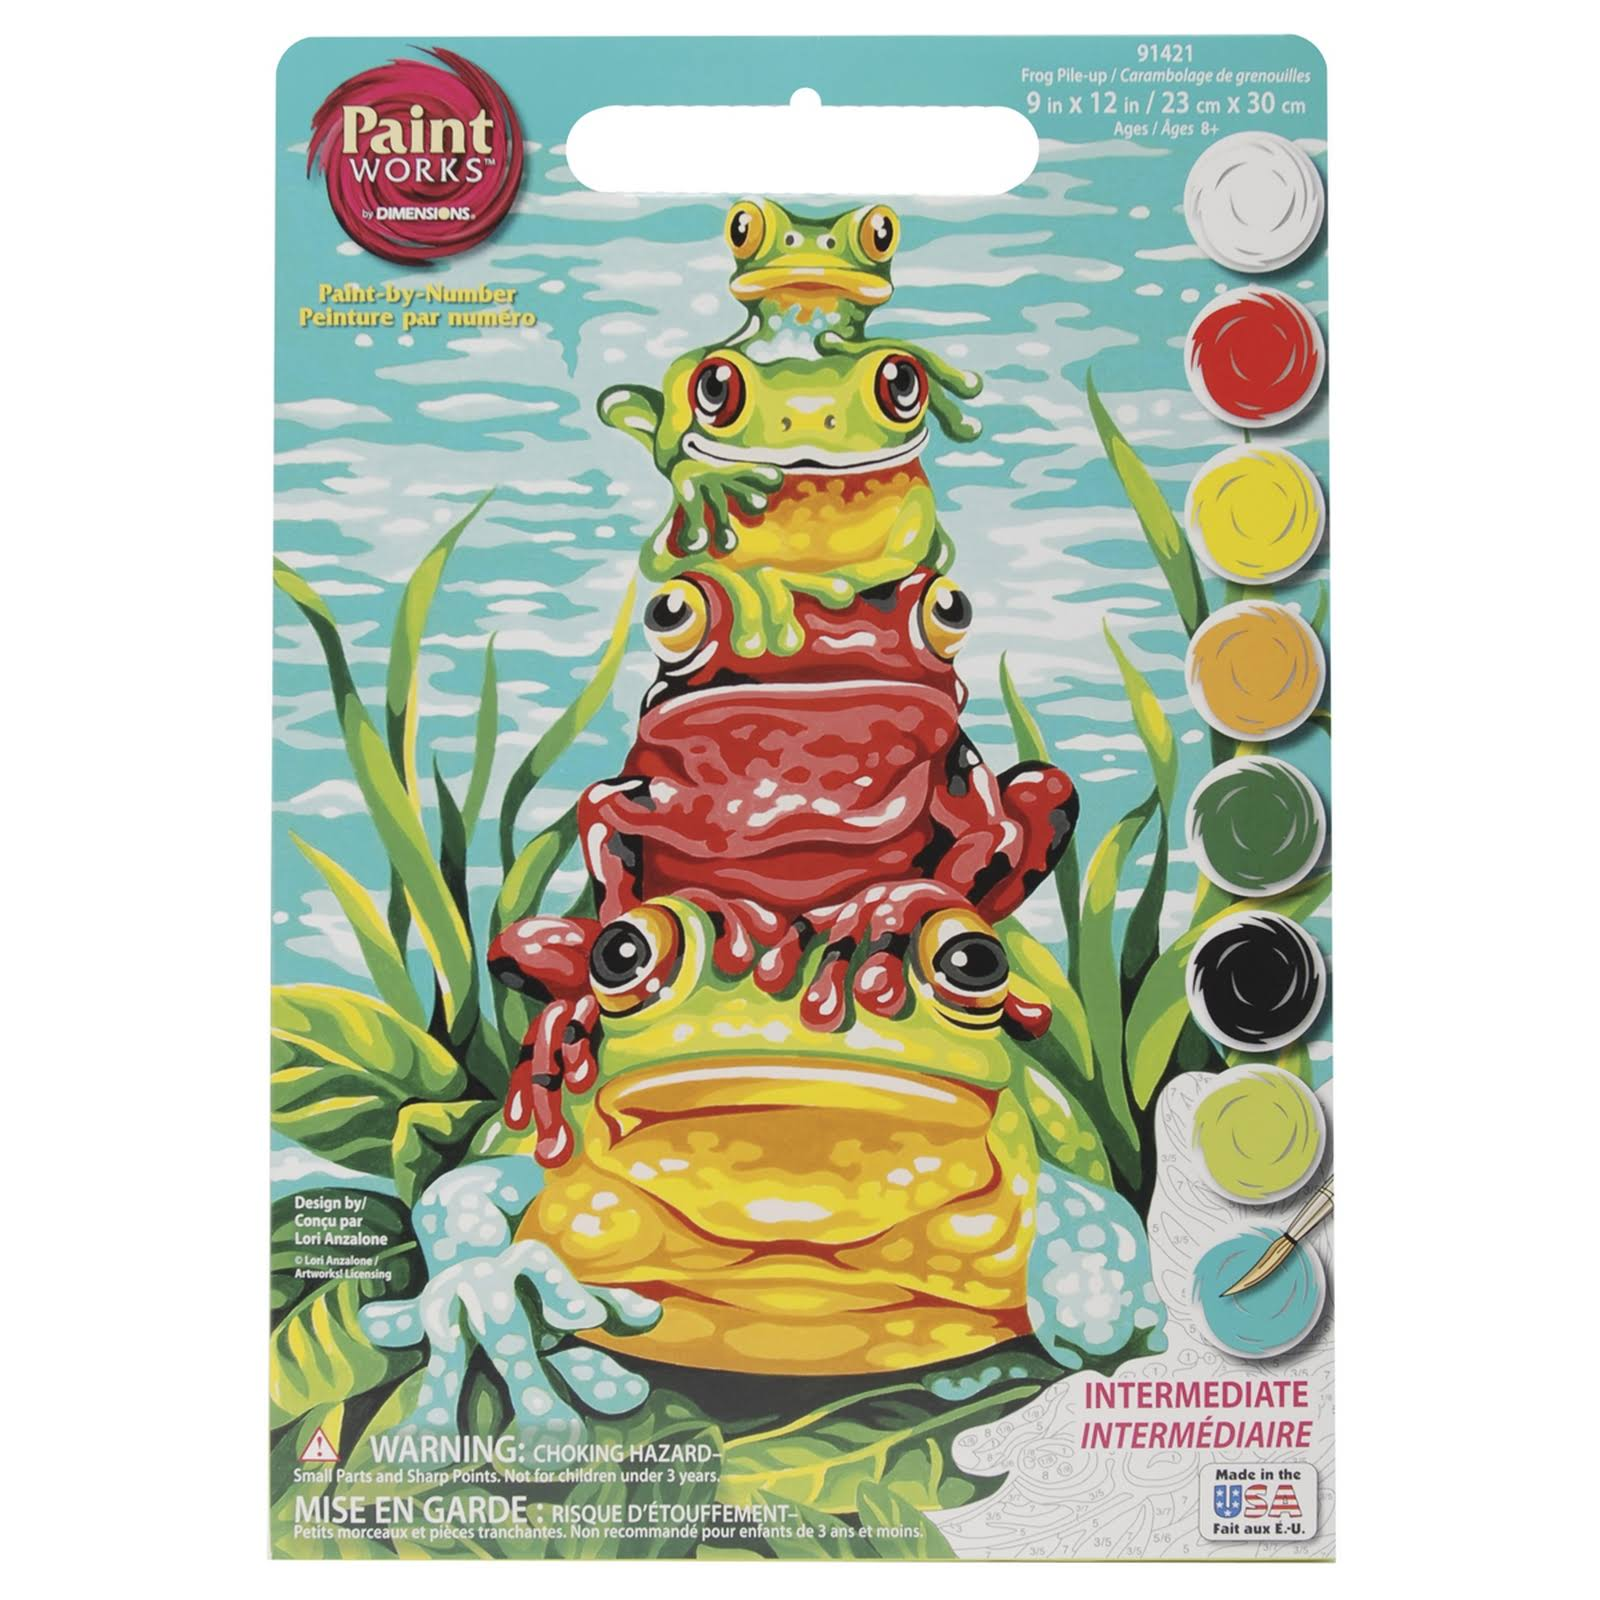 Dimensions Needlecrafts Paintworks Paint By Number Kit - Frog Pile Up